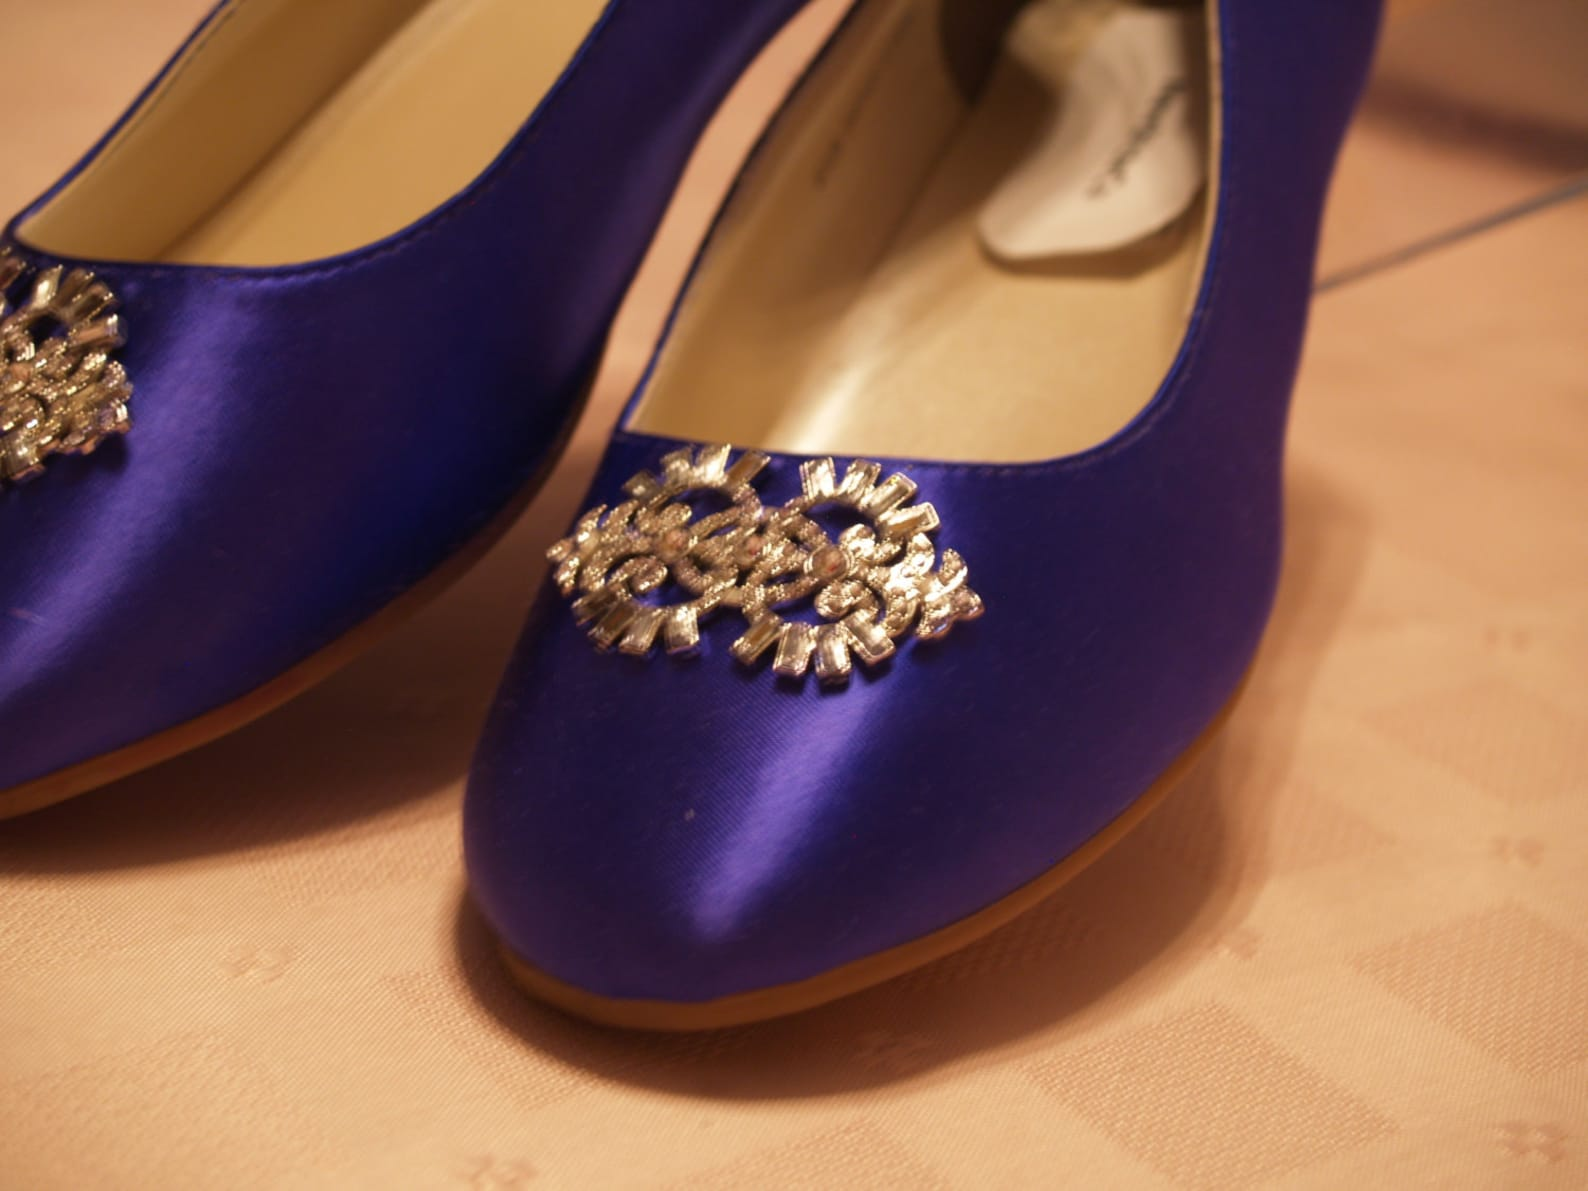 wedding flat shoes purple with brooch - deep purple flats plus 200 colors,non slip white satin ballet style slipper flats, bling